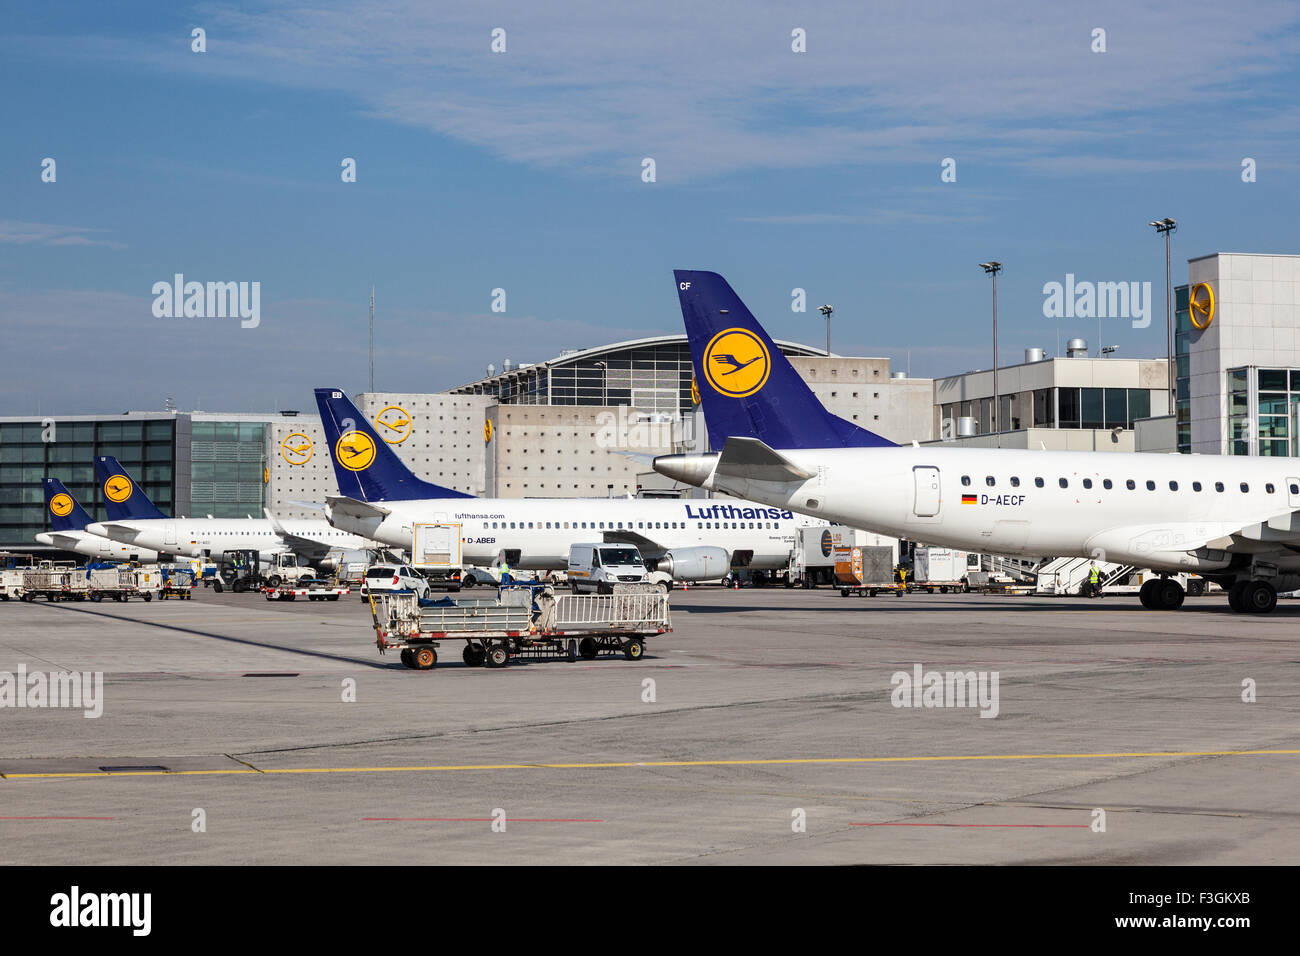 Lufthansa Airplanes at the Gates of the Frankfurt Airport - Stock Image